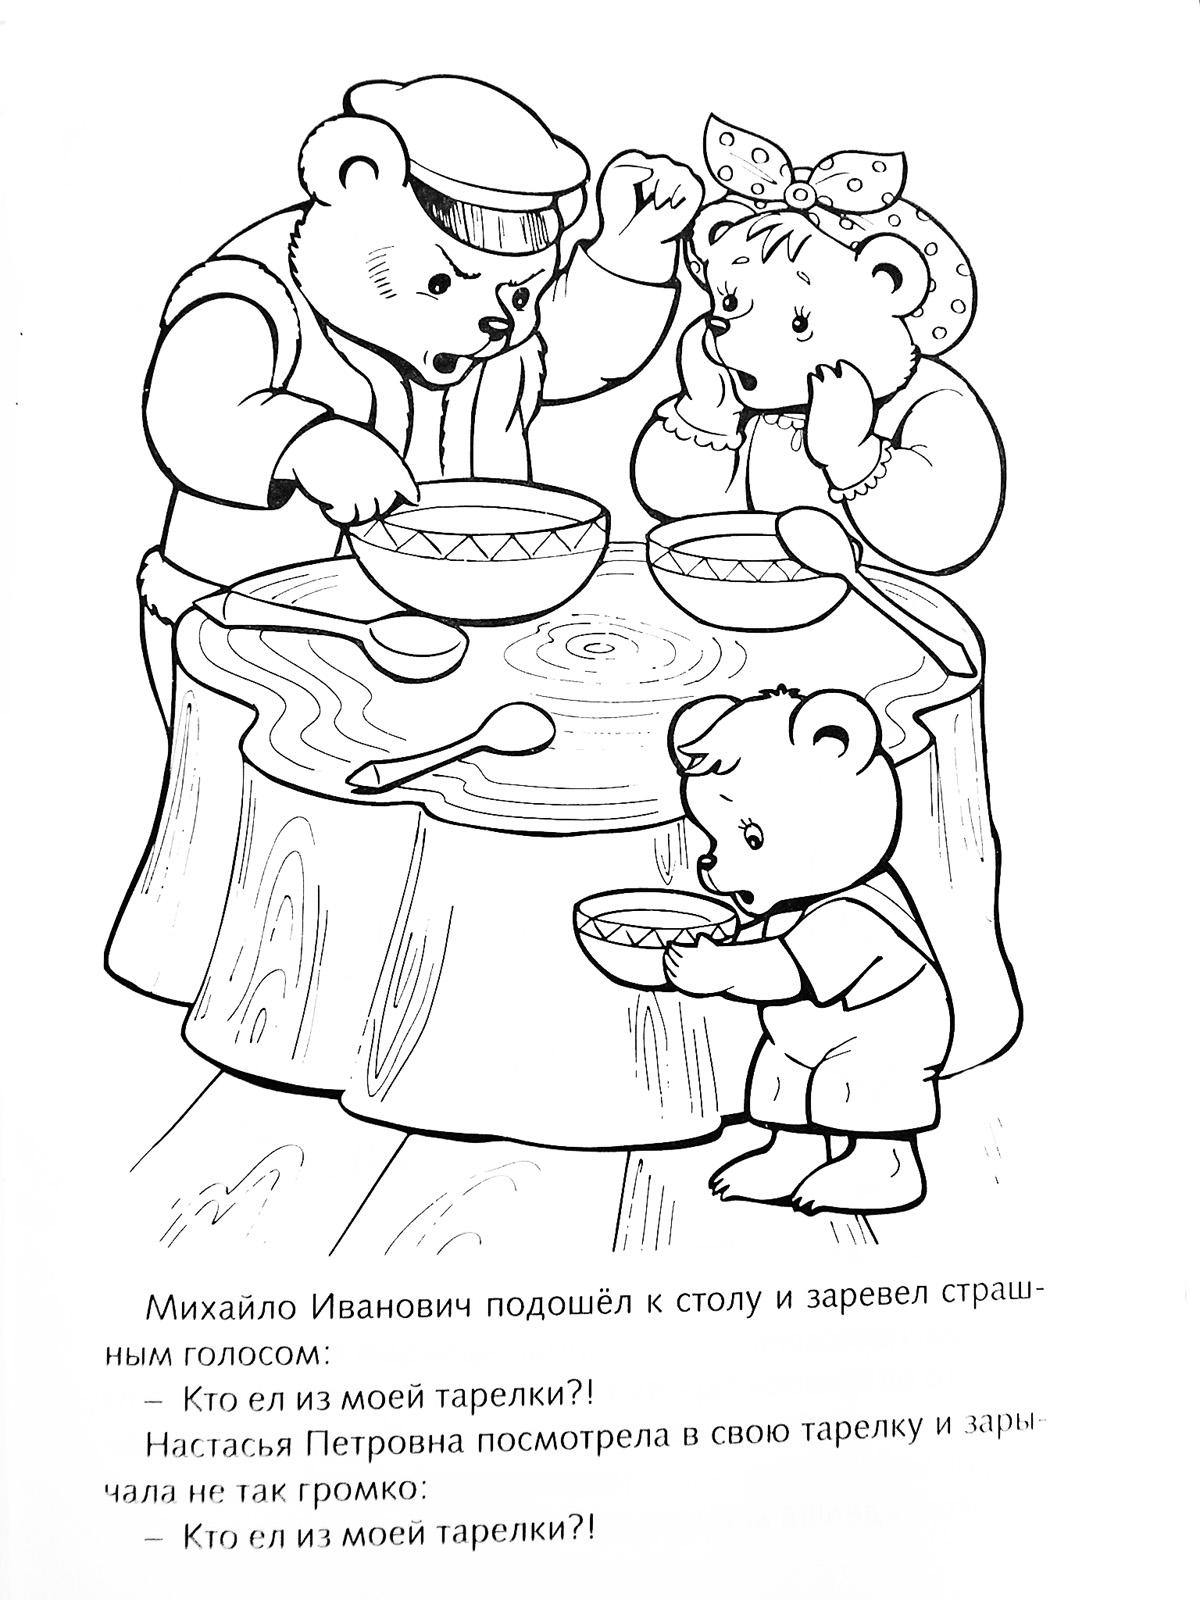 Coloring coloring pages to the tale of three bears Three Bears at the table, a fairy tale coloring pages